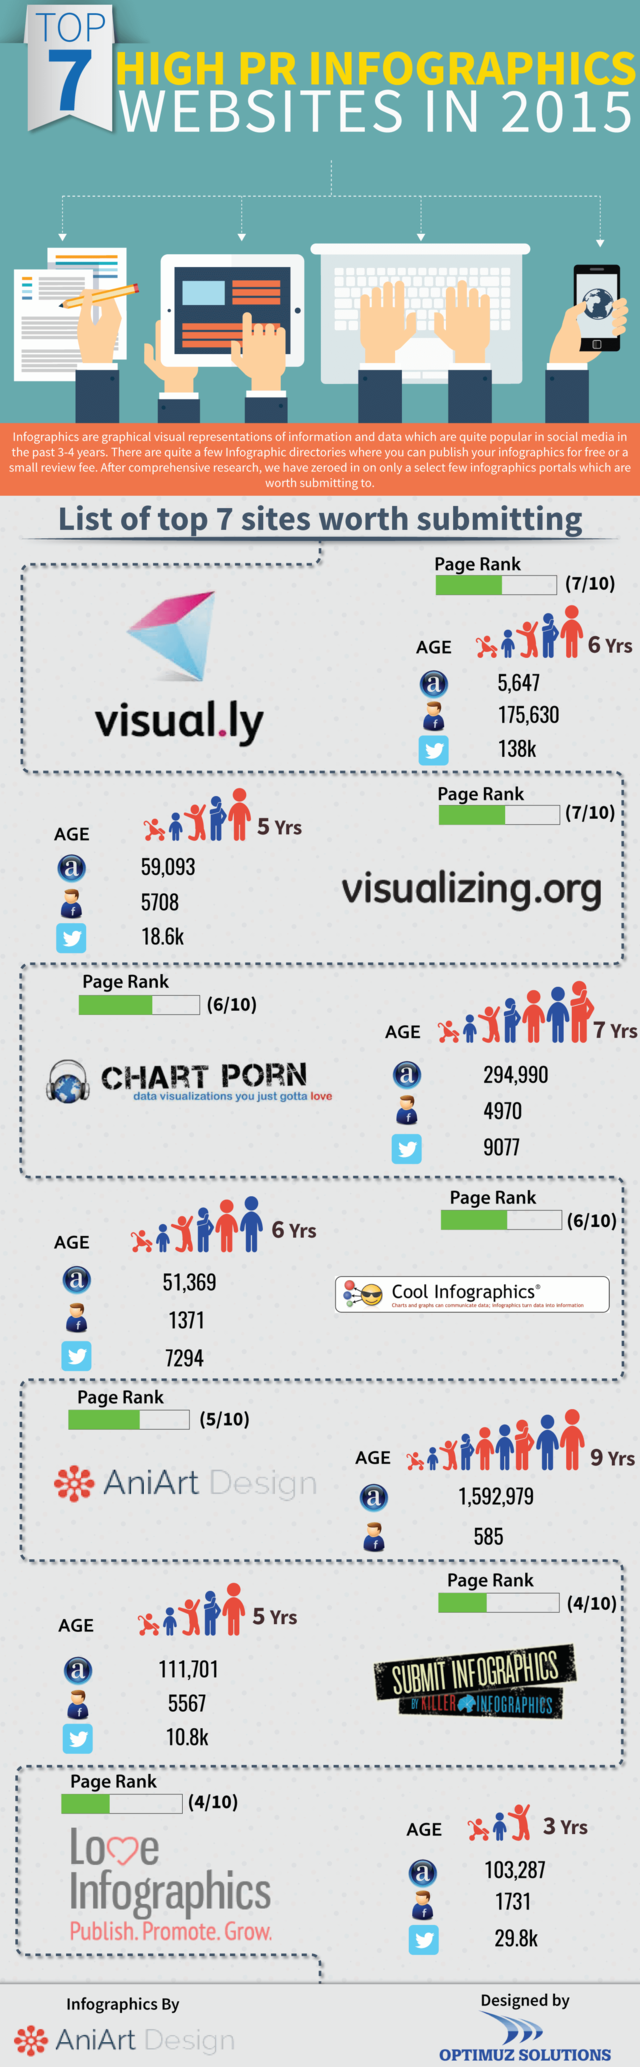 Top 7 sites for infographics submission